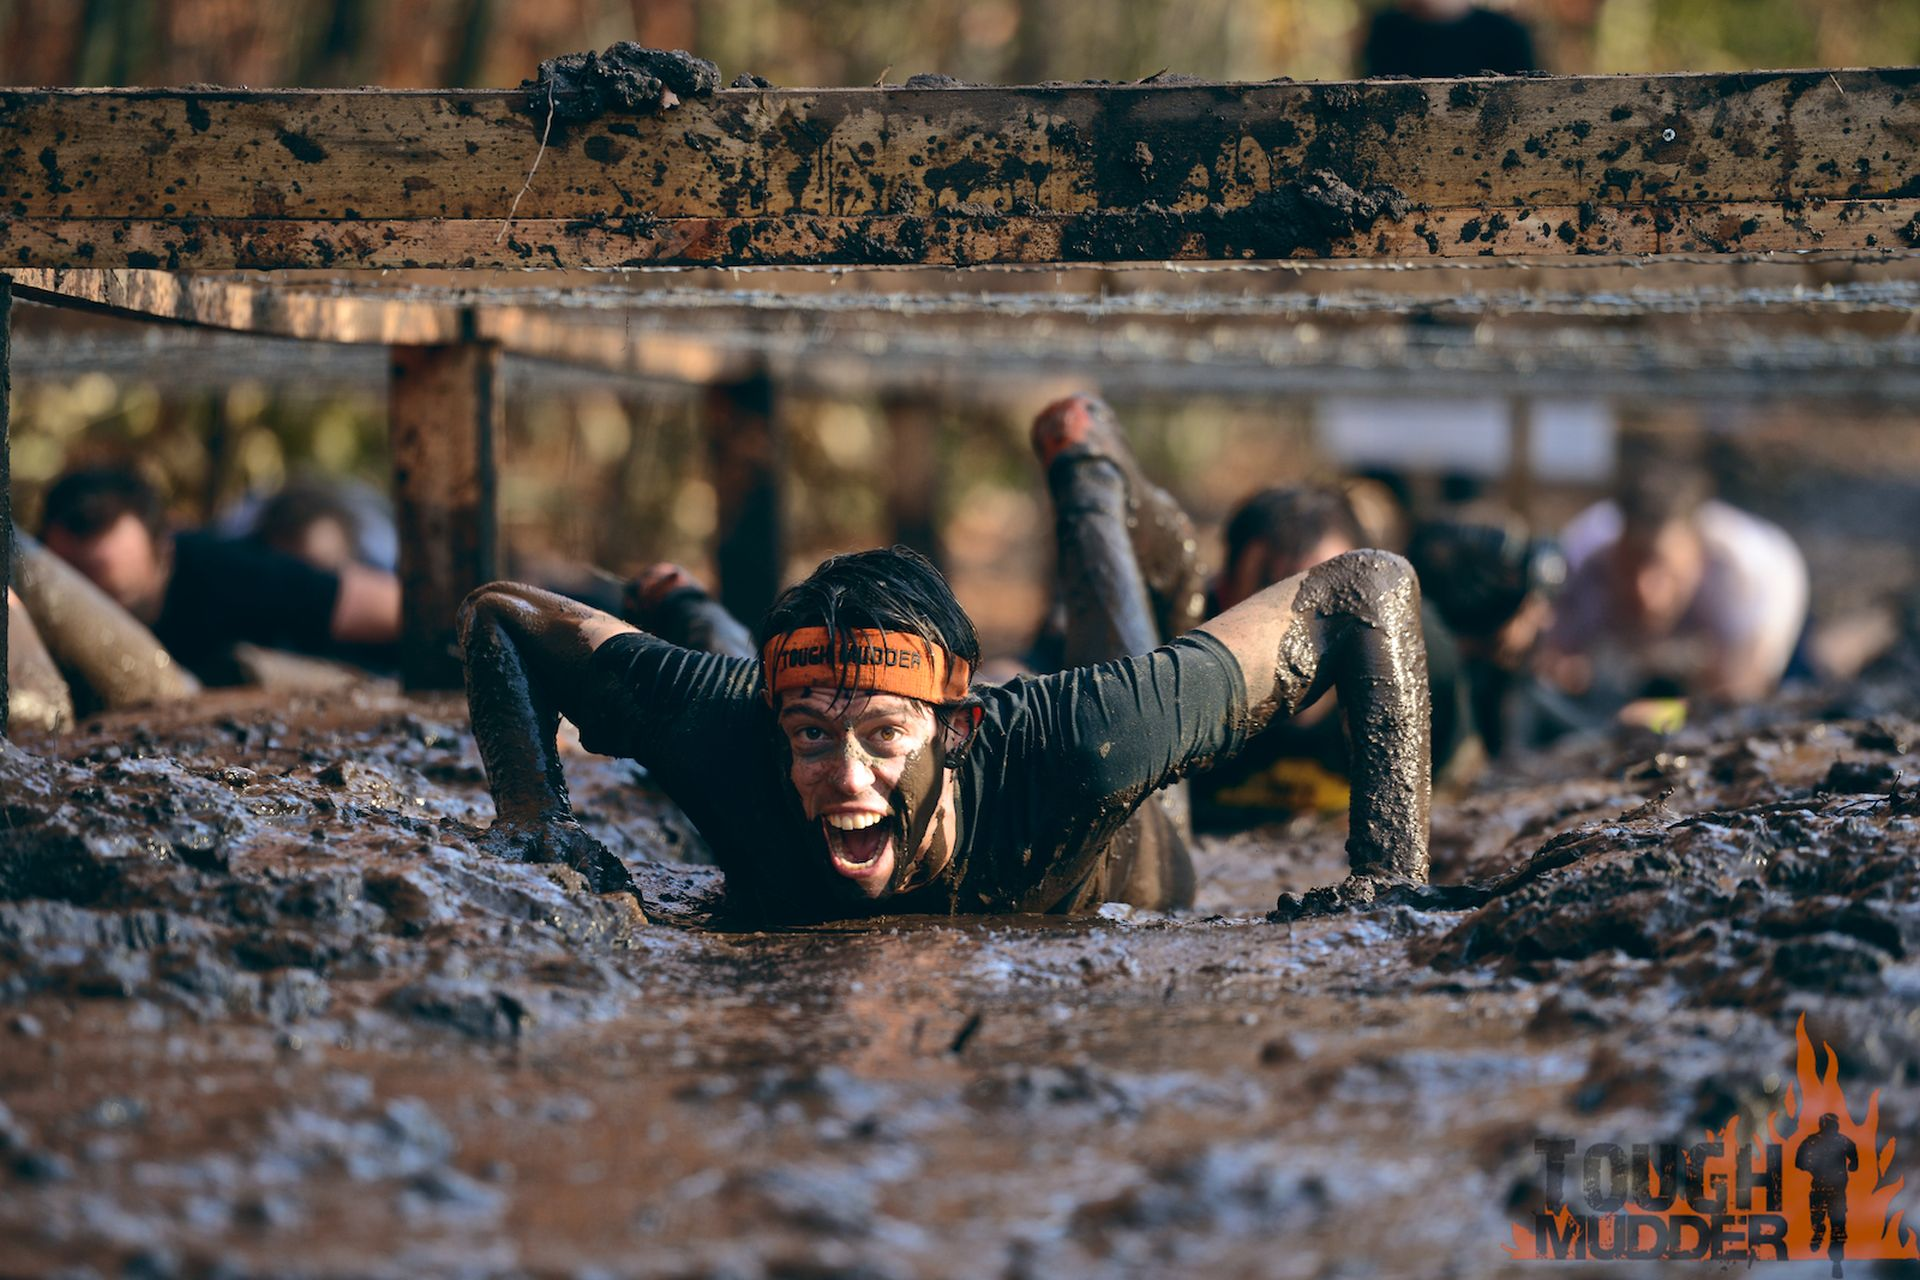 Tough Mudder is a 12 mile obstacle course designed to test all-around strength, stamina, teamwork, and mental grit.